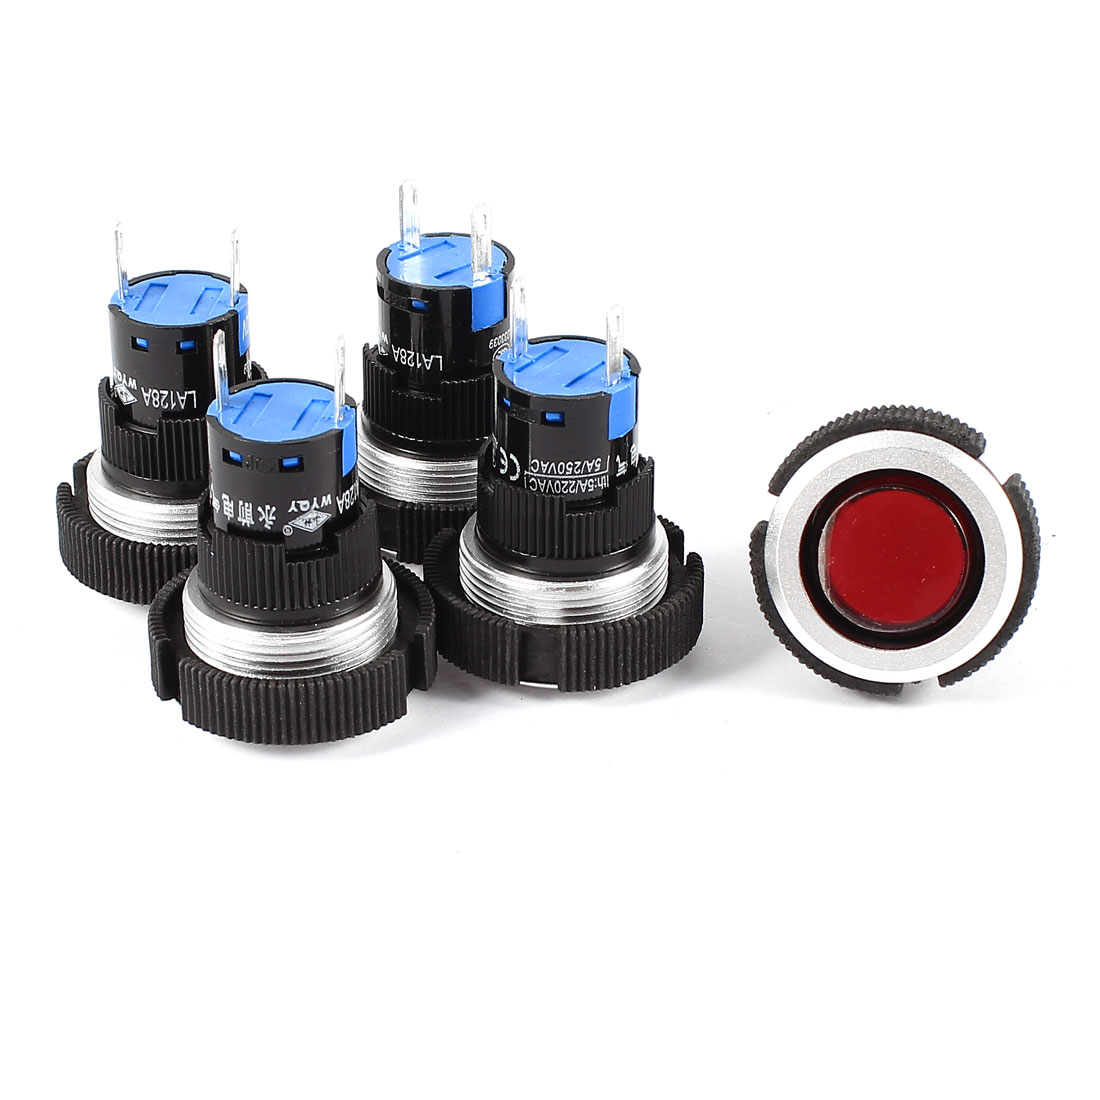 5Pcs AC 220V 22mm Thread Panel Mounting 2 Terminals Soldering Red Signal Indicator Light